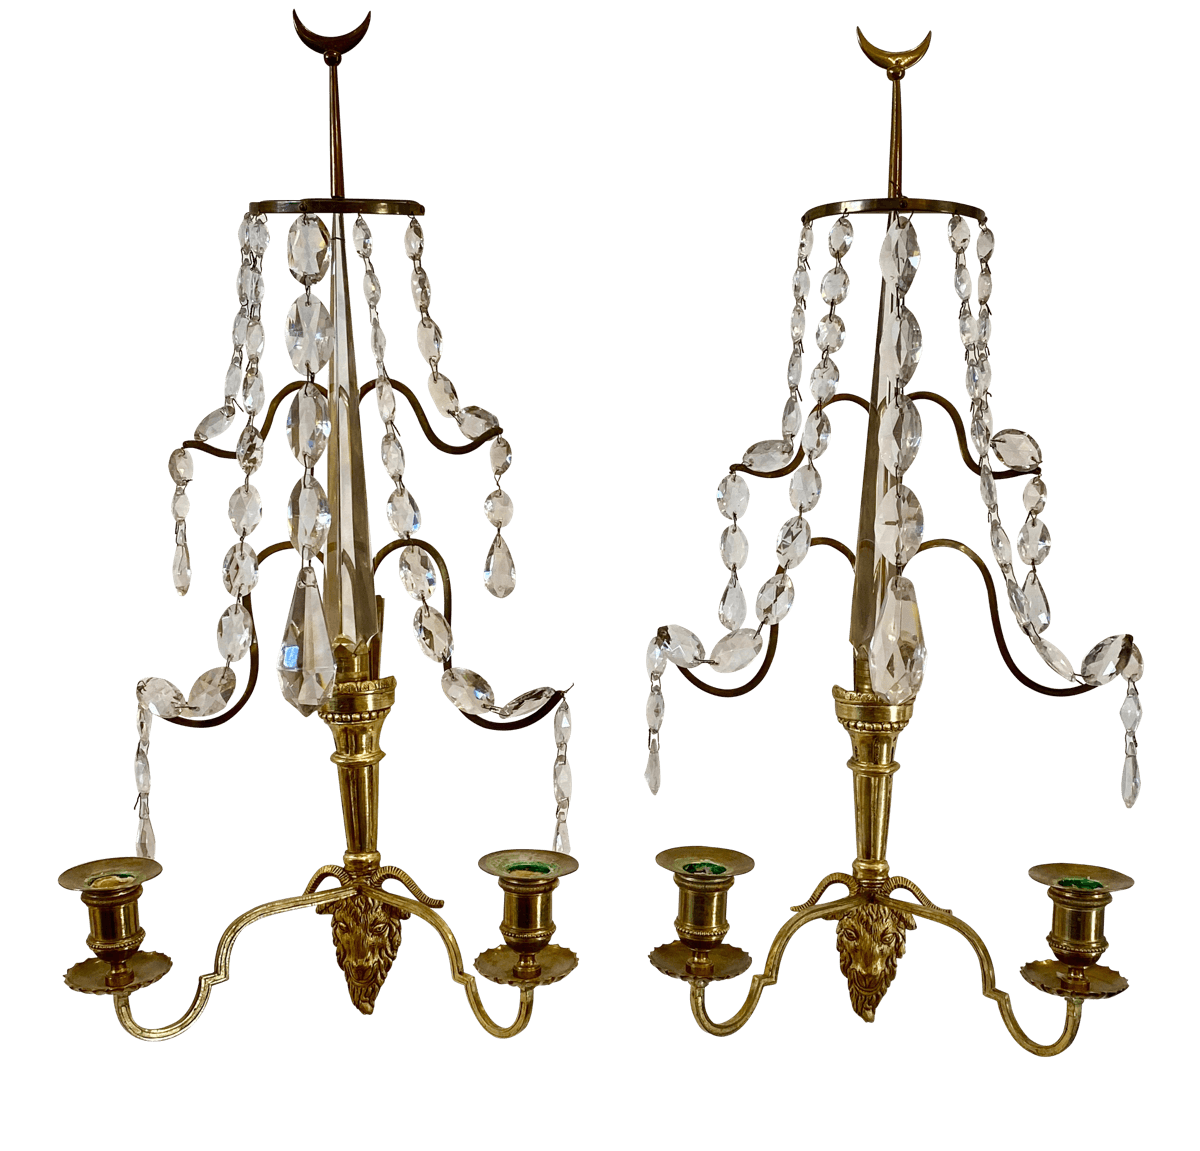 Sconces - Pair Of Baltic Or Russian Fire Gilt Bronze Two-arm Wall Sconces, Circa 1810 - Childs Estate